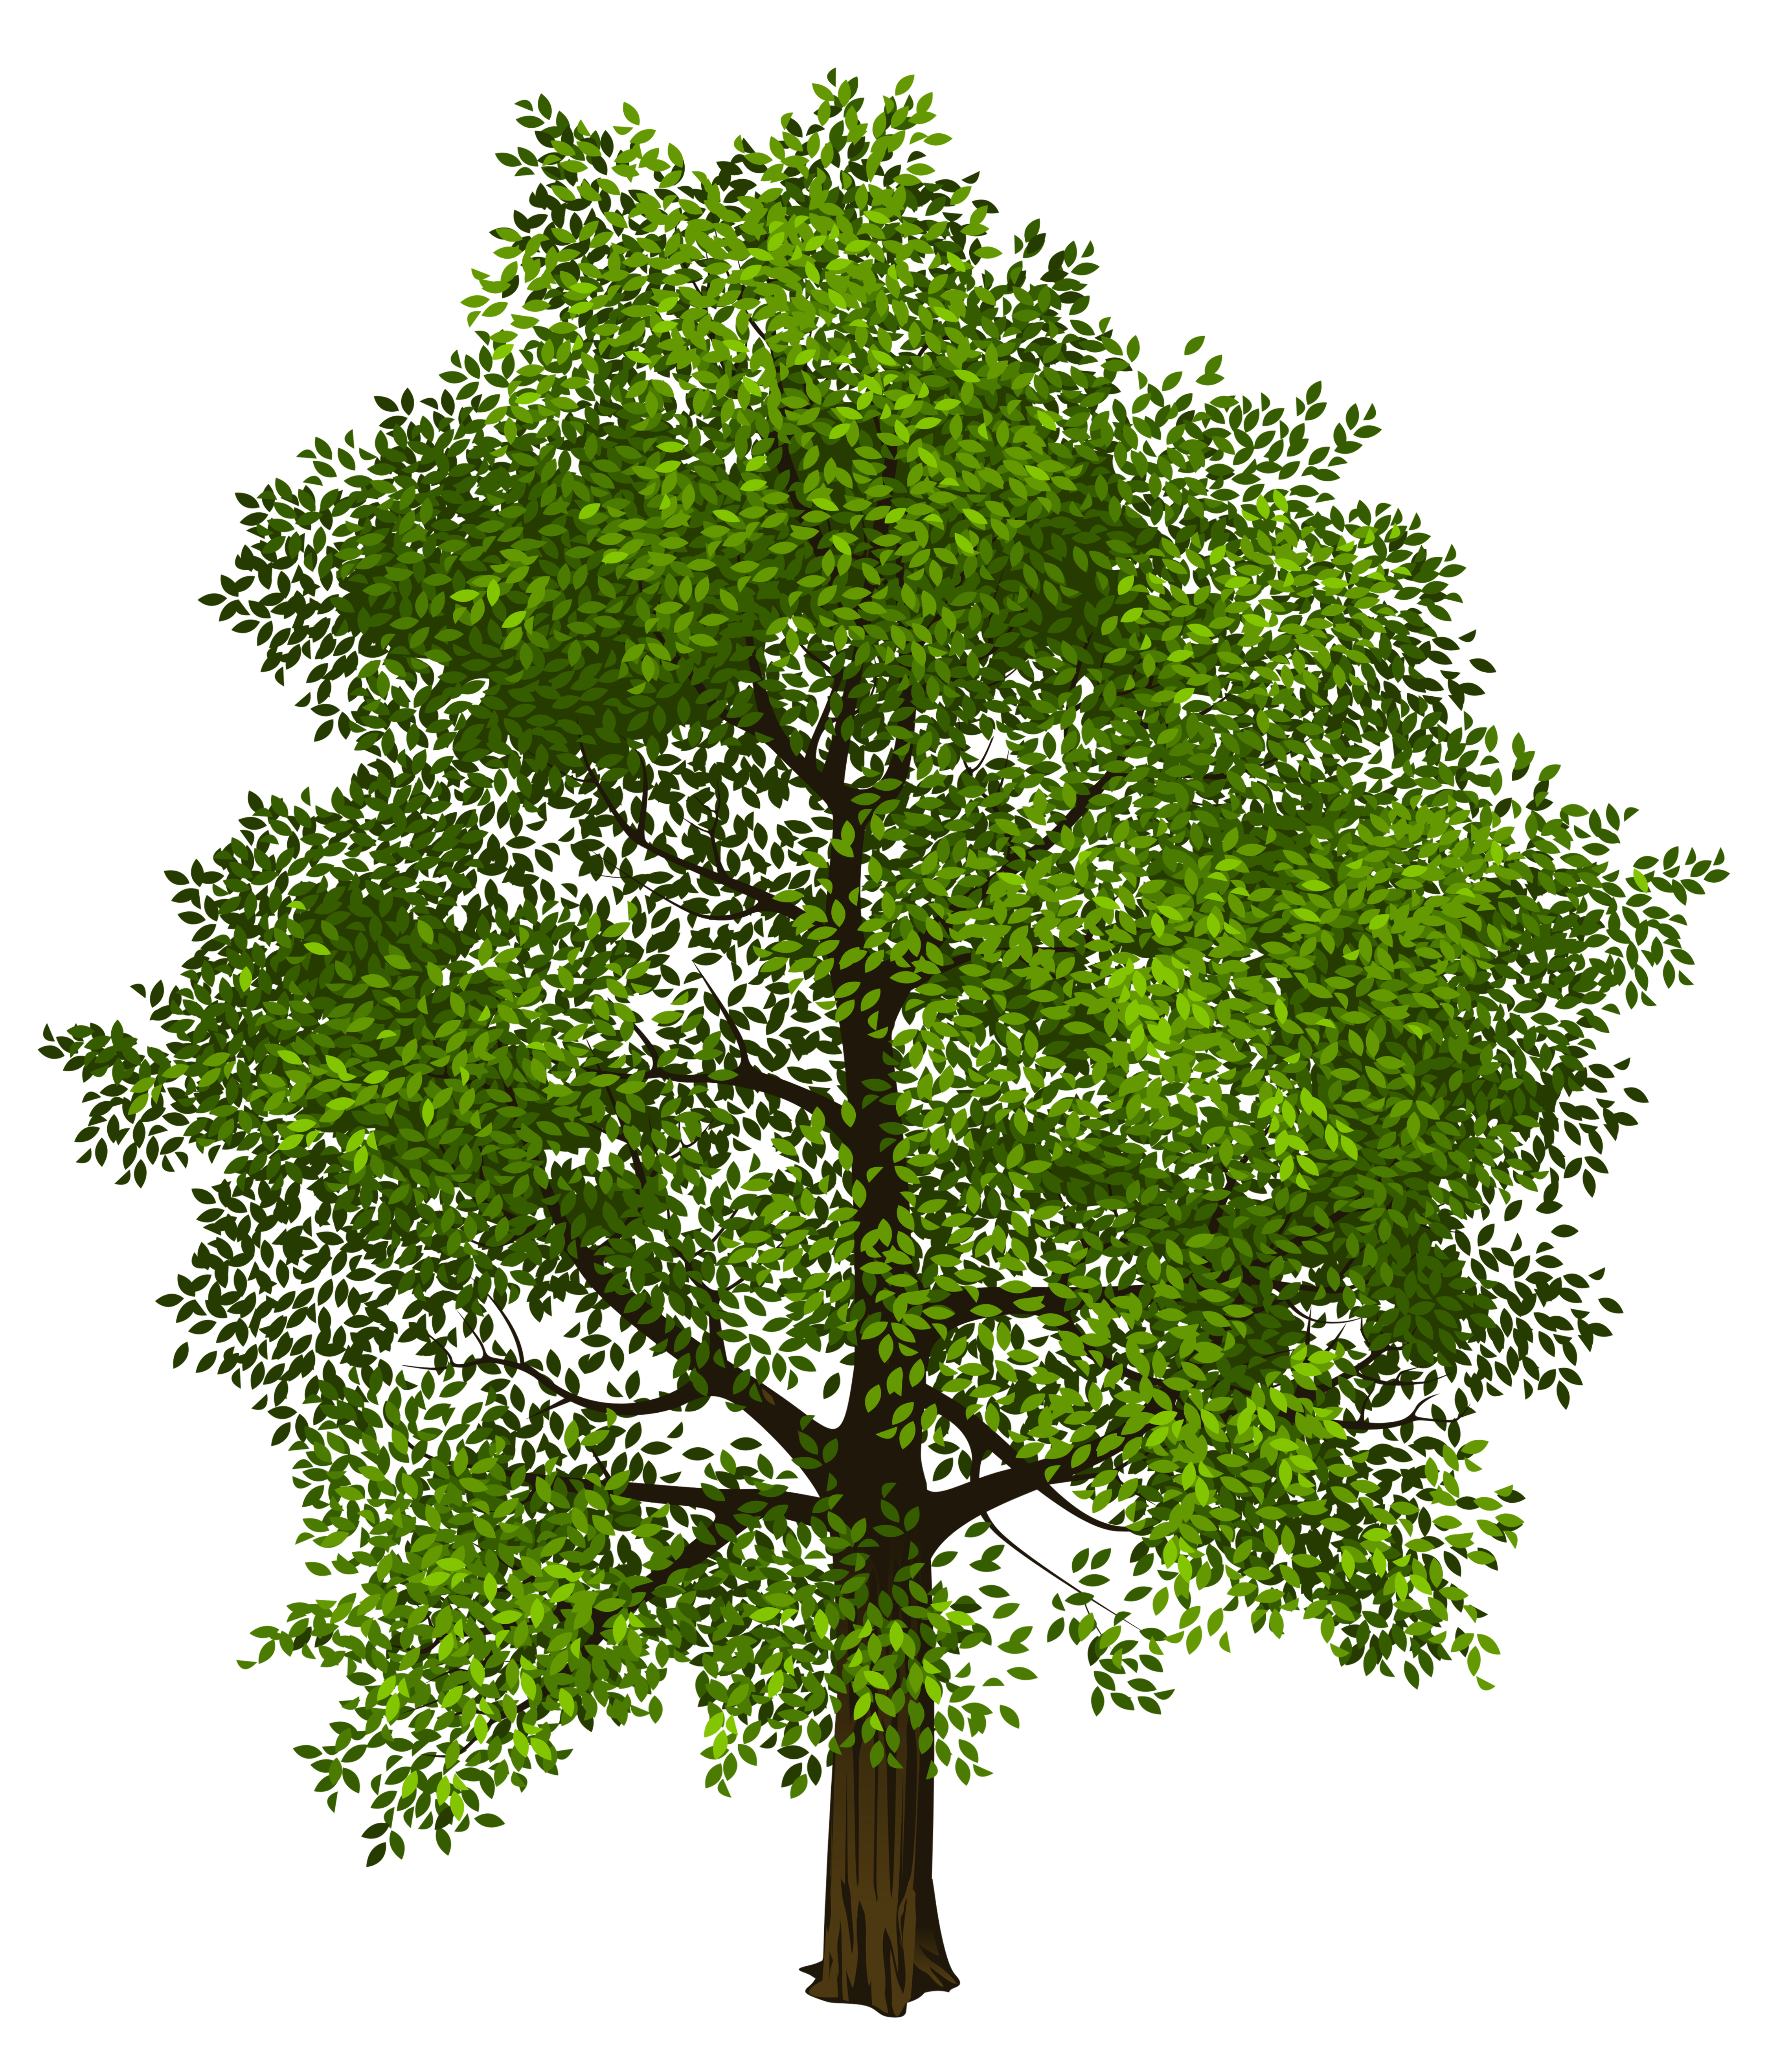 Tree png images free download. Transparent green picture gallery